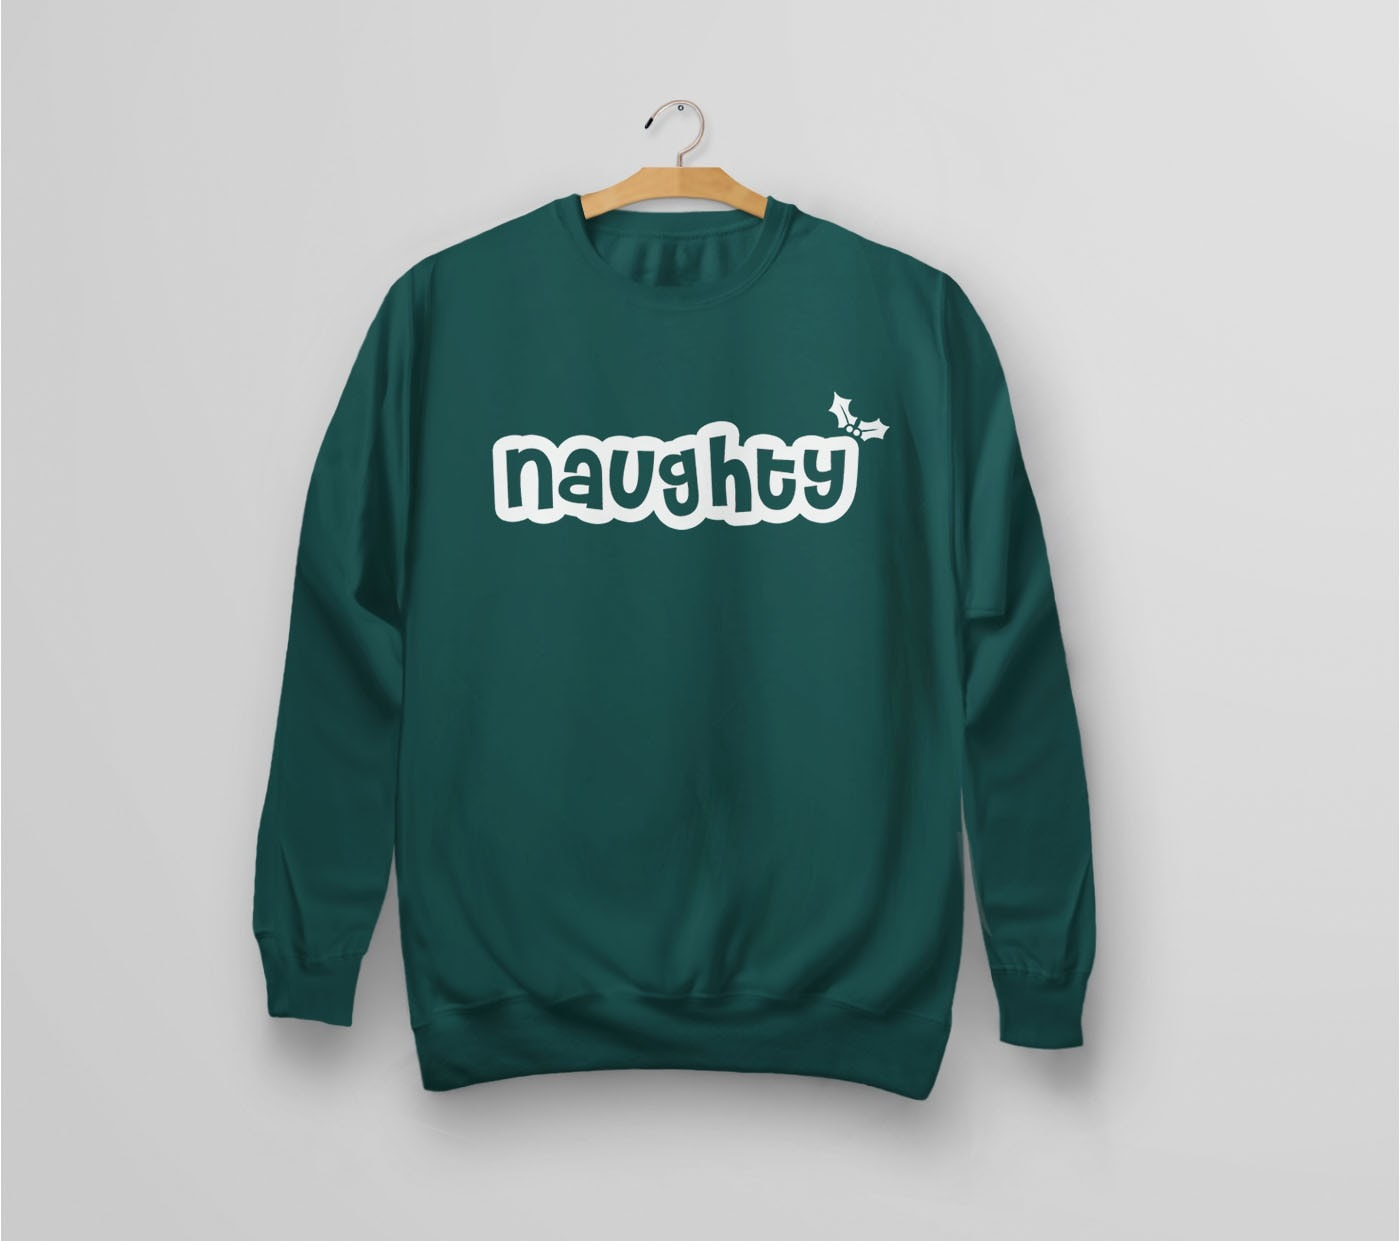 Naughty Christmas Sweatshirt - green